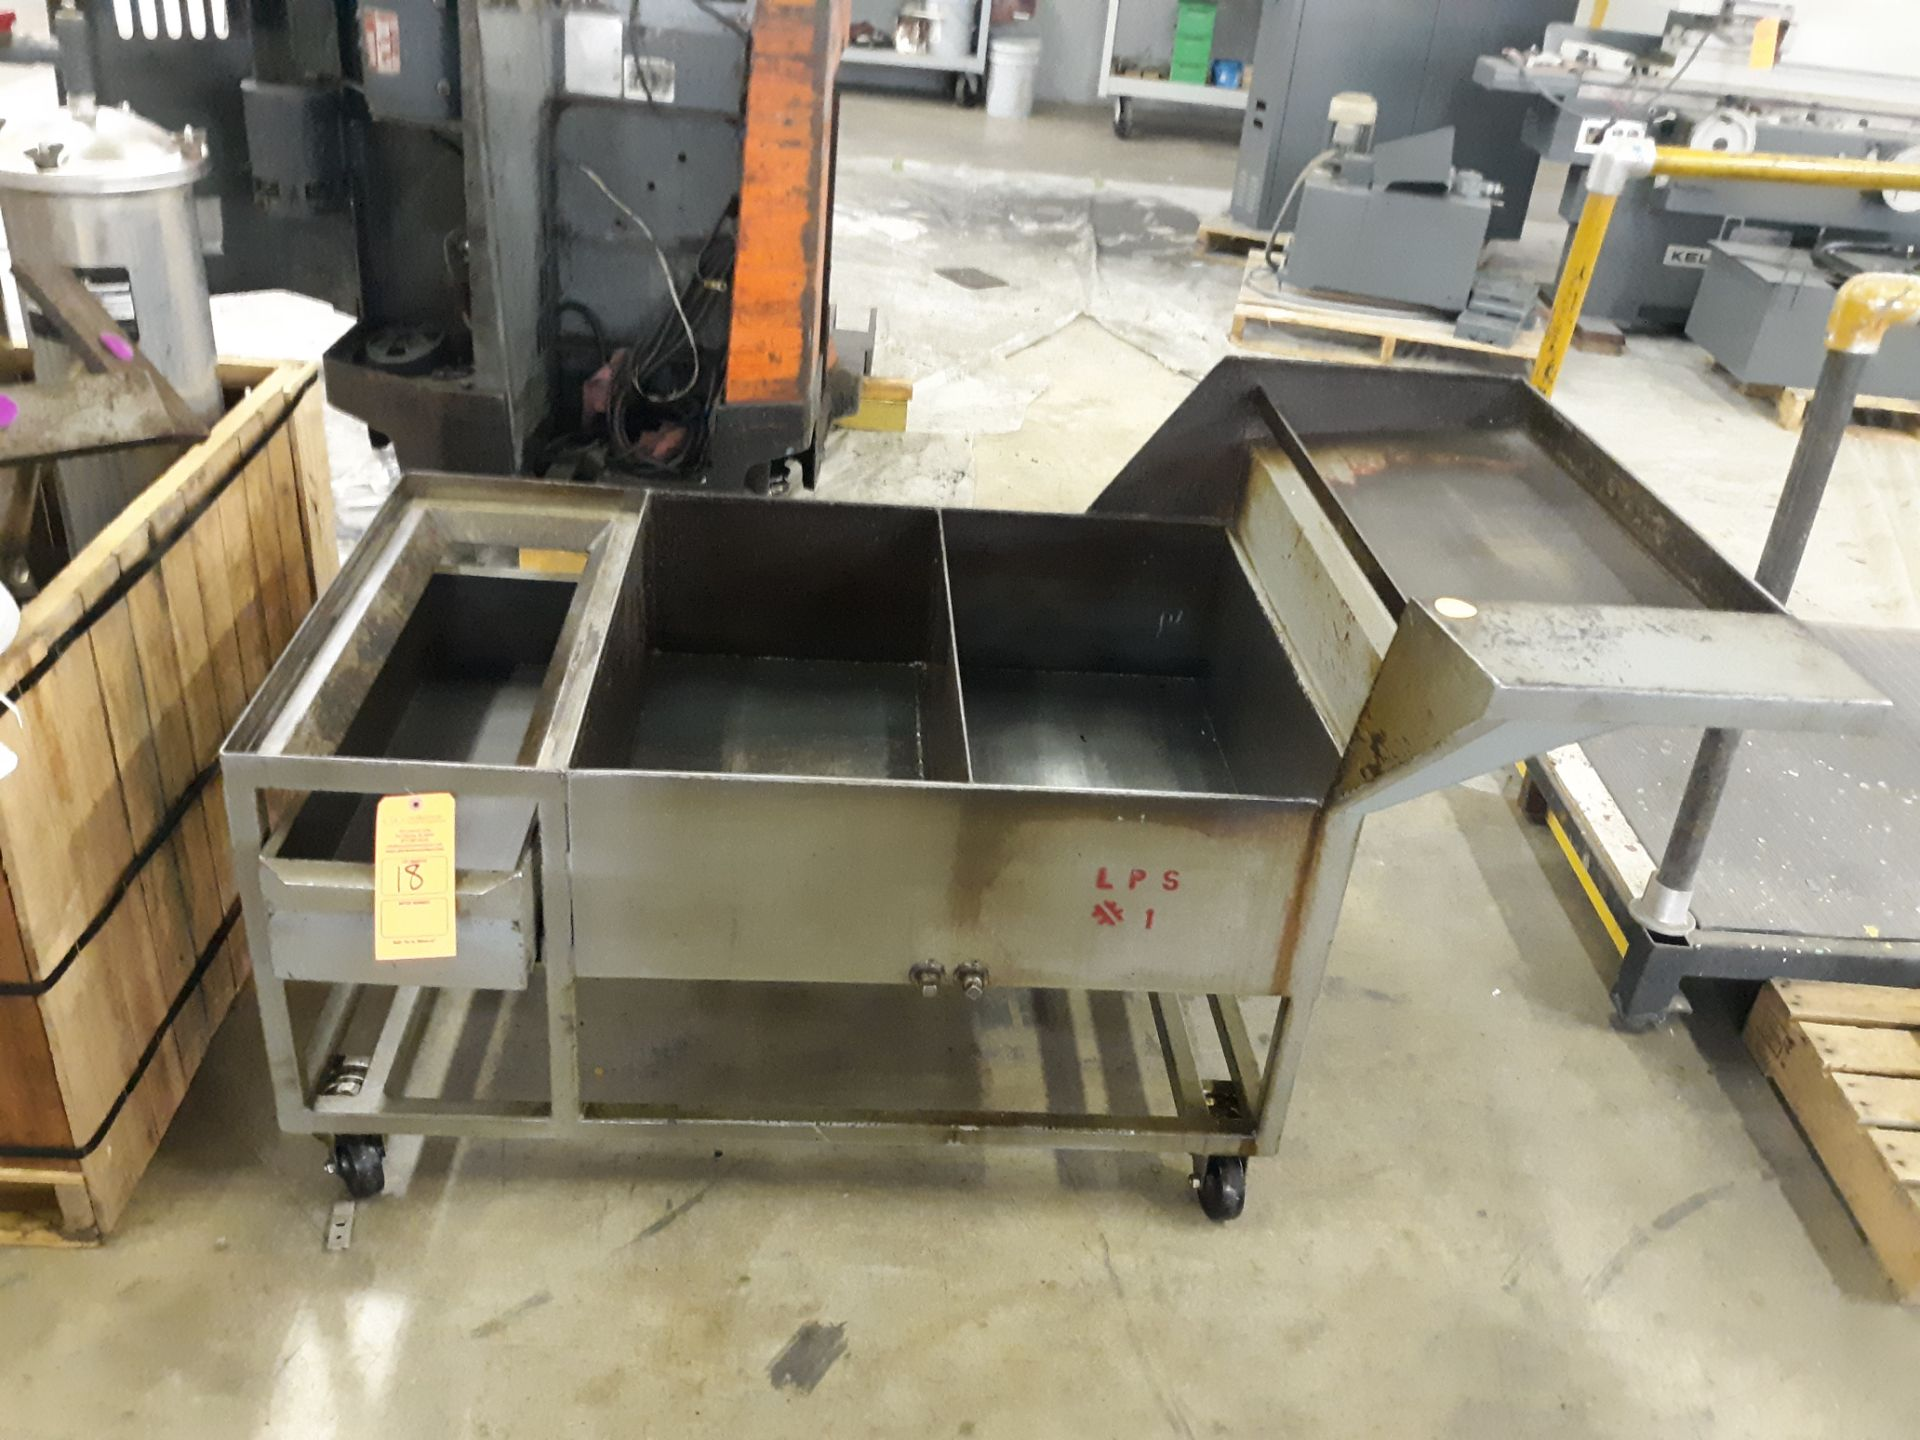 Lot 18 - ROLLING PARTS RESERVOIR W/ DRAINS: RIGGING FEE $10